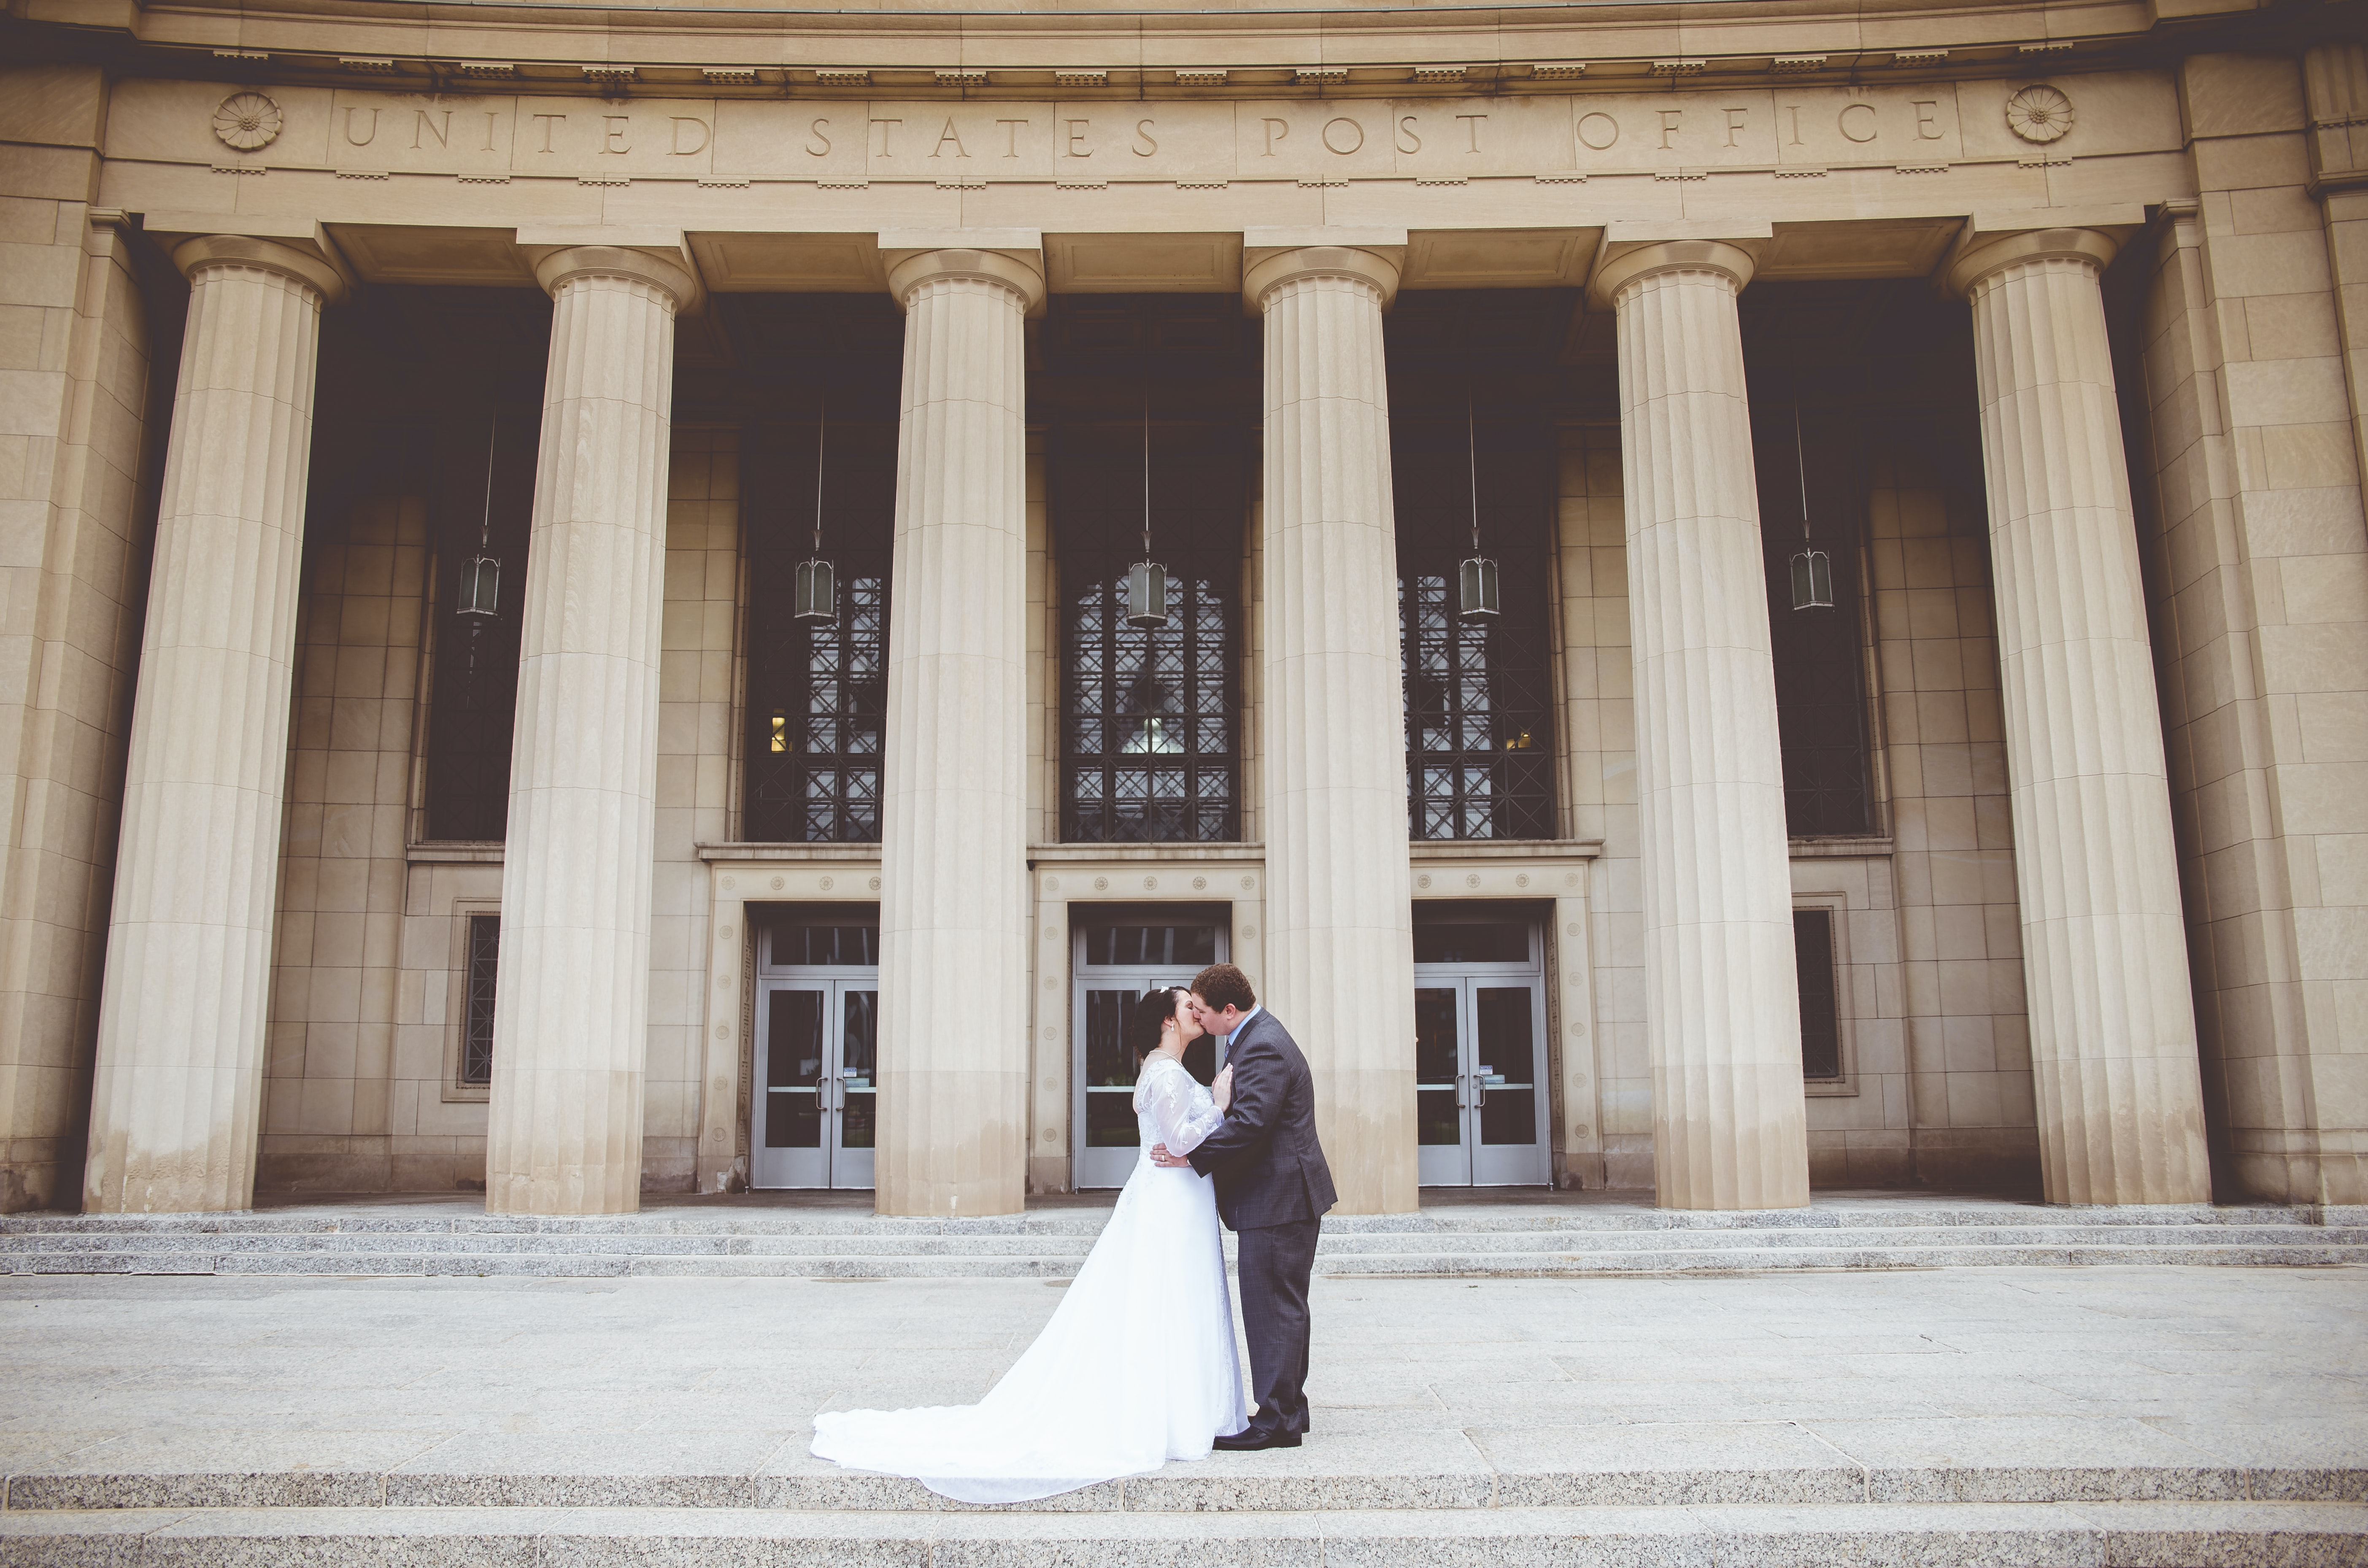 A married couple kisses in front of a US Post Office building with tall columns